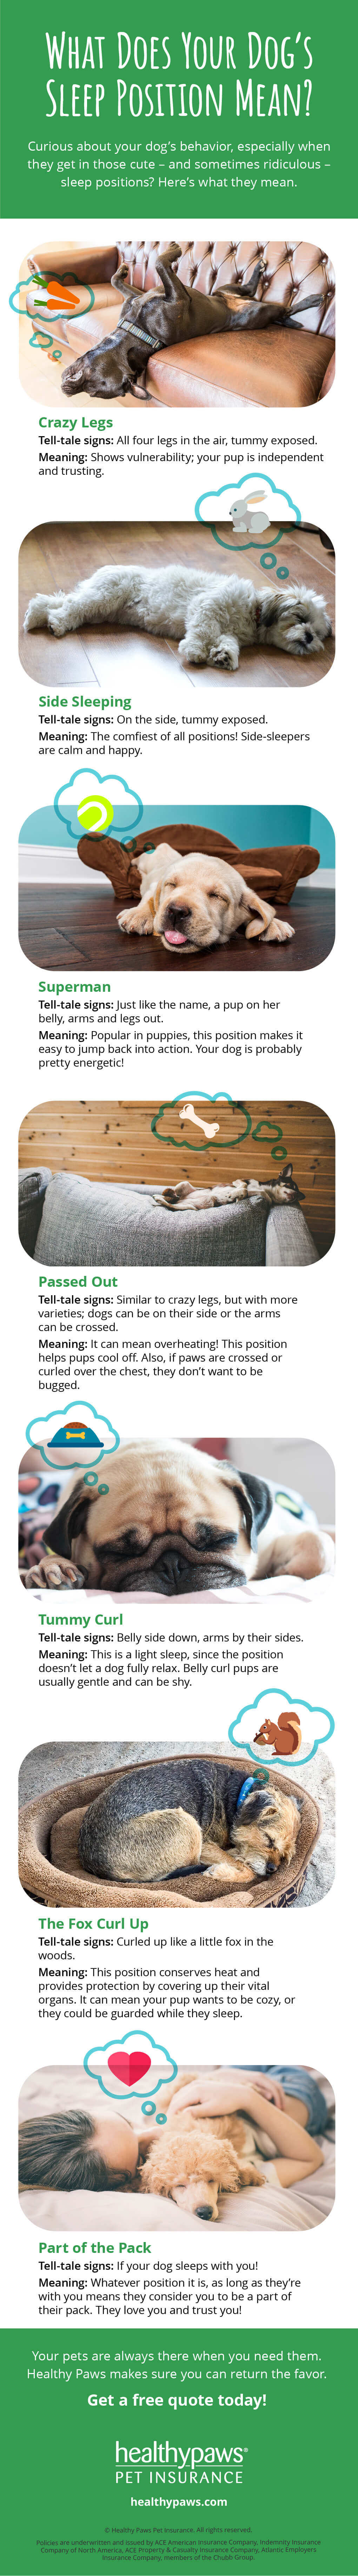 What Does Your Dog's Sleep Position Mean? | Healthy Paws